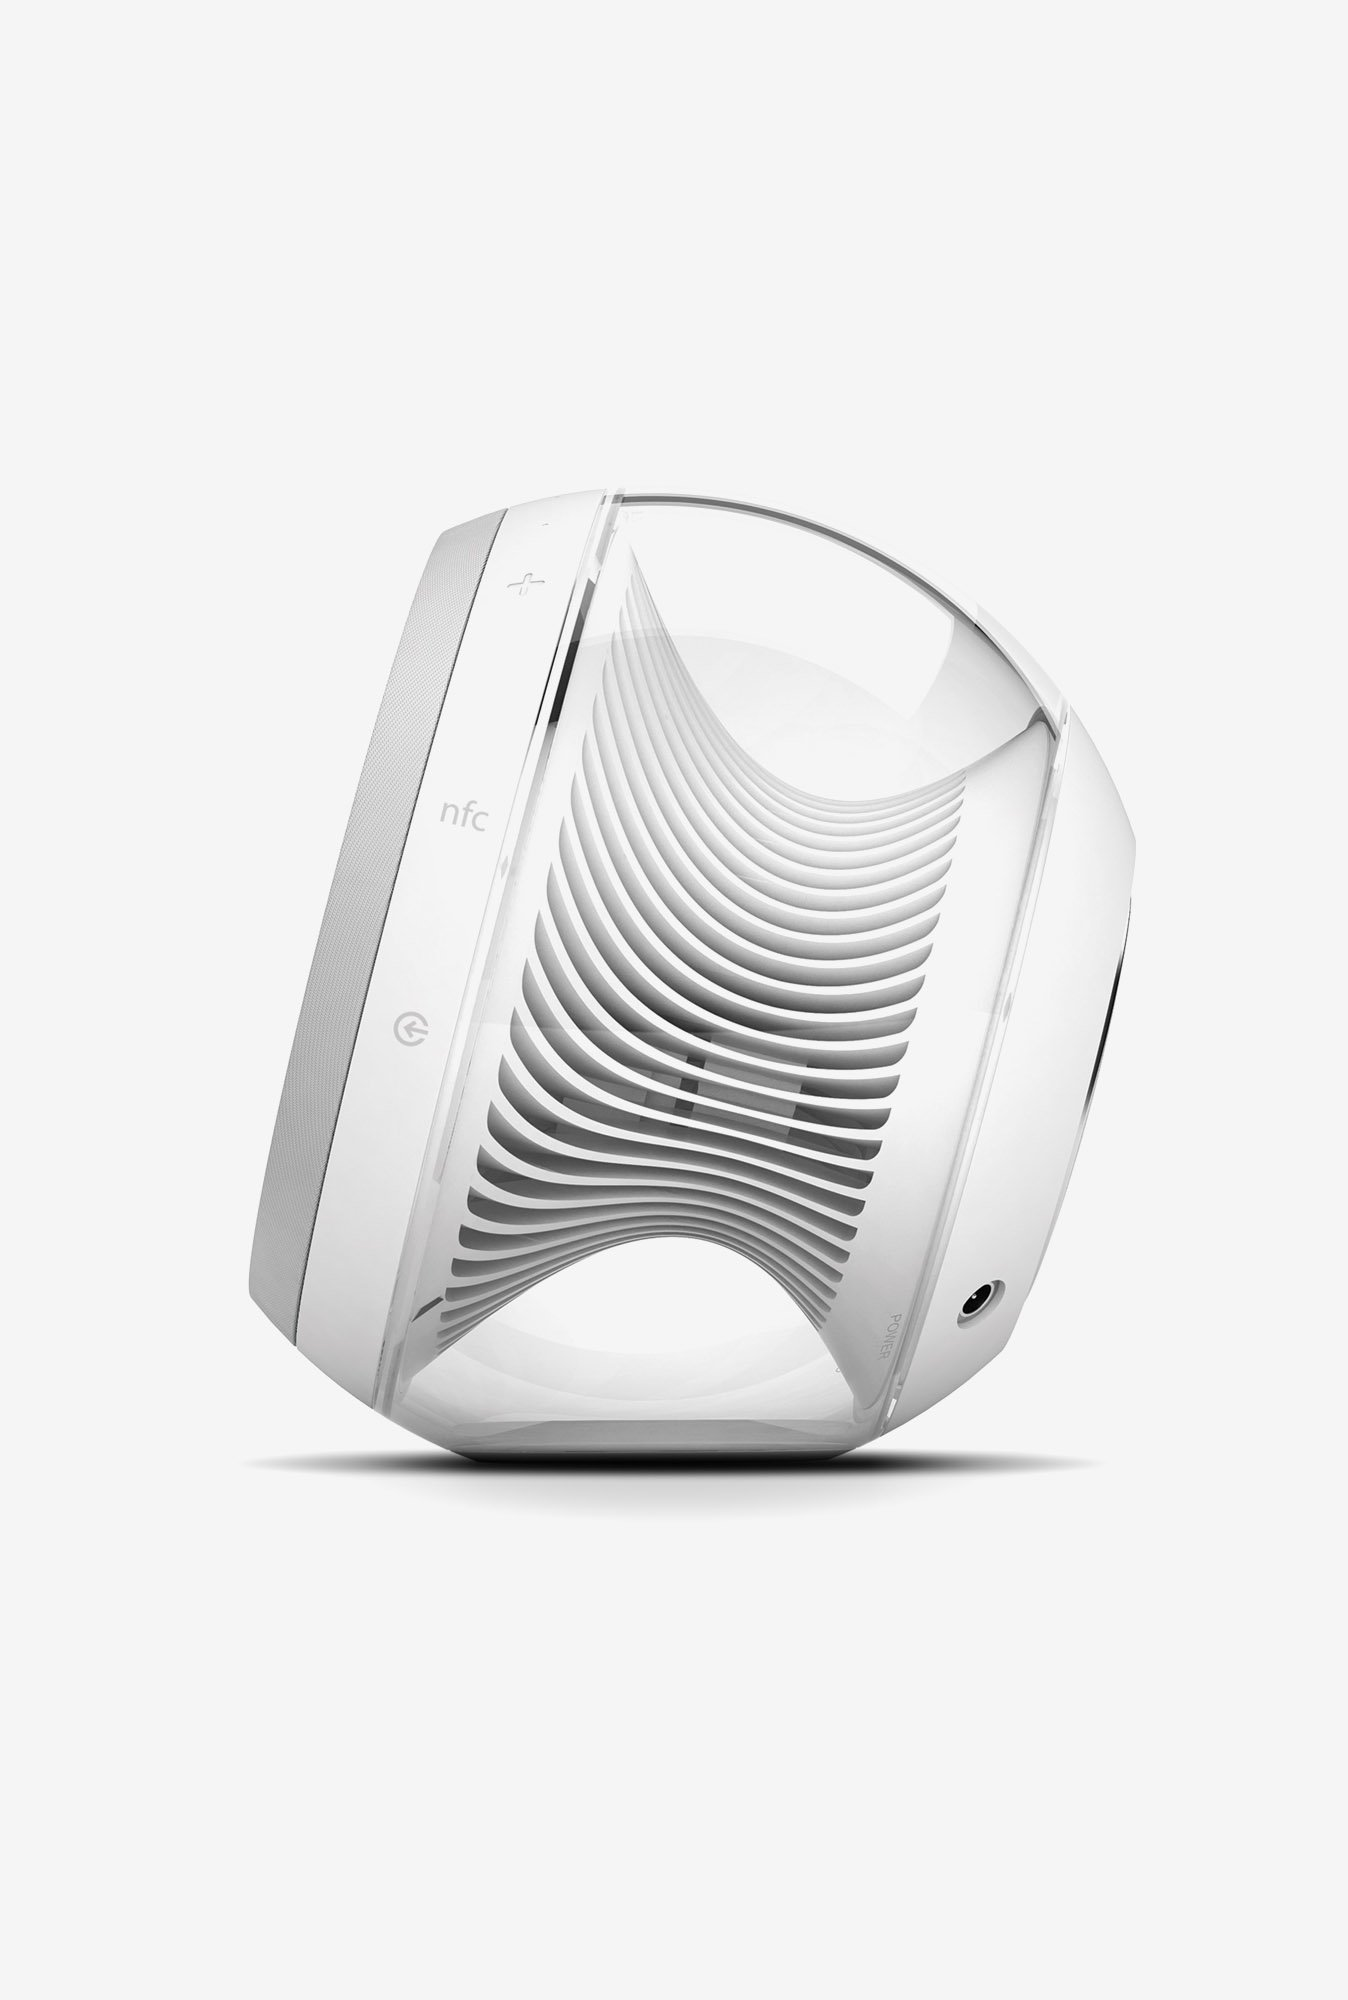 Harman Kardon Nova Bluetooth Speaker White